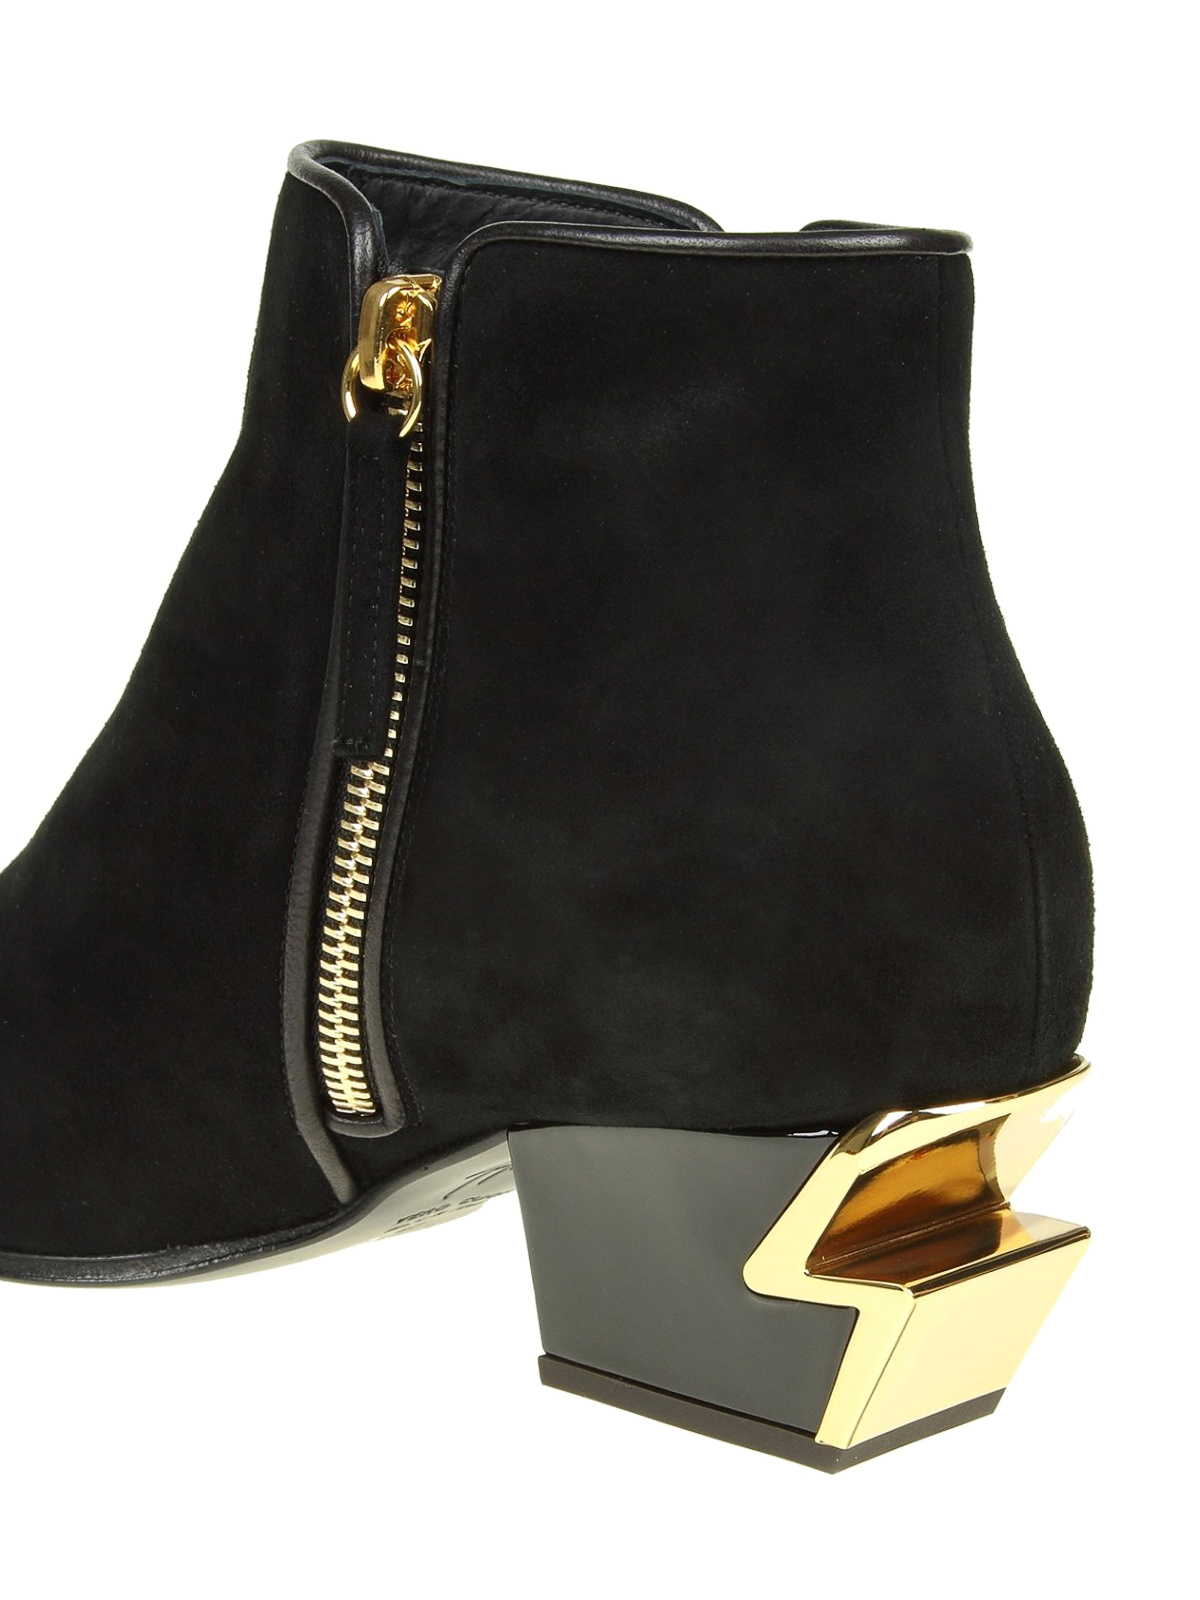 G-Heel black suede ankle boots